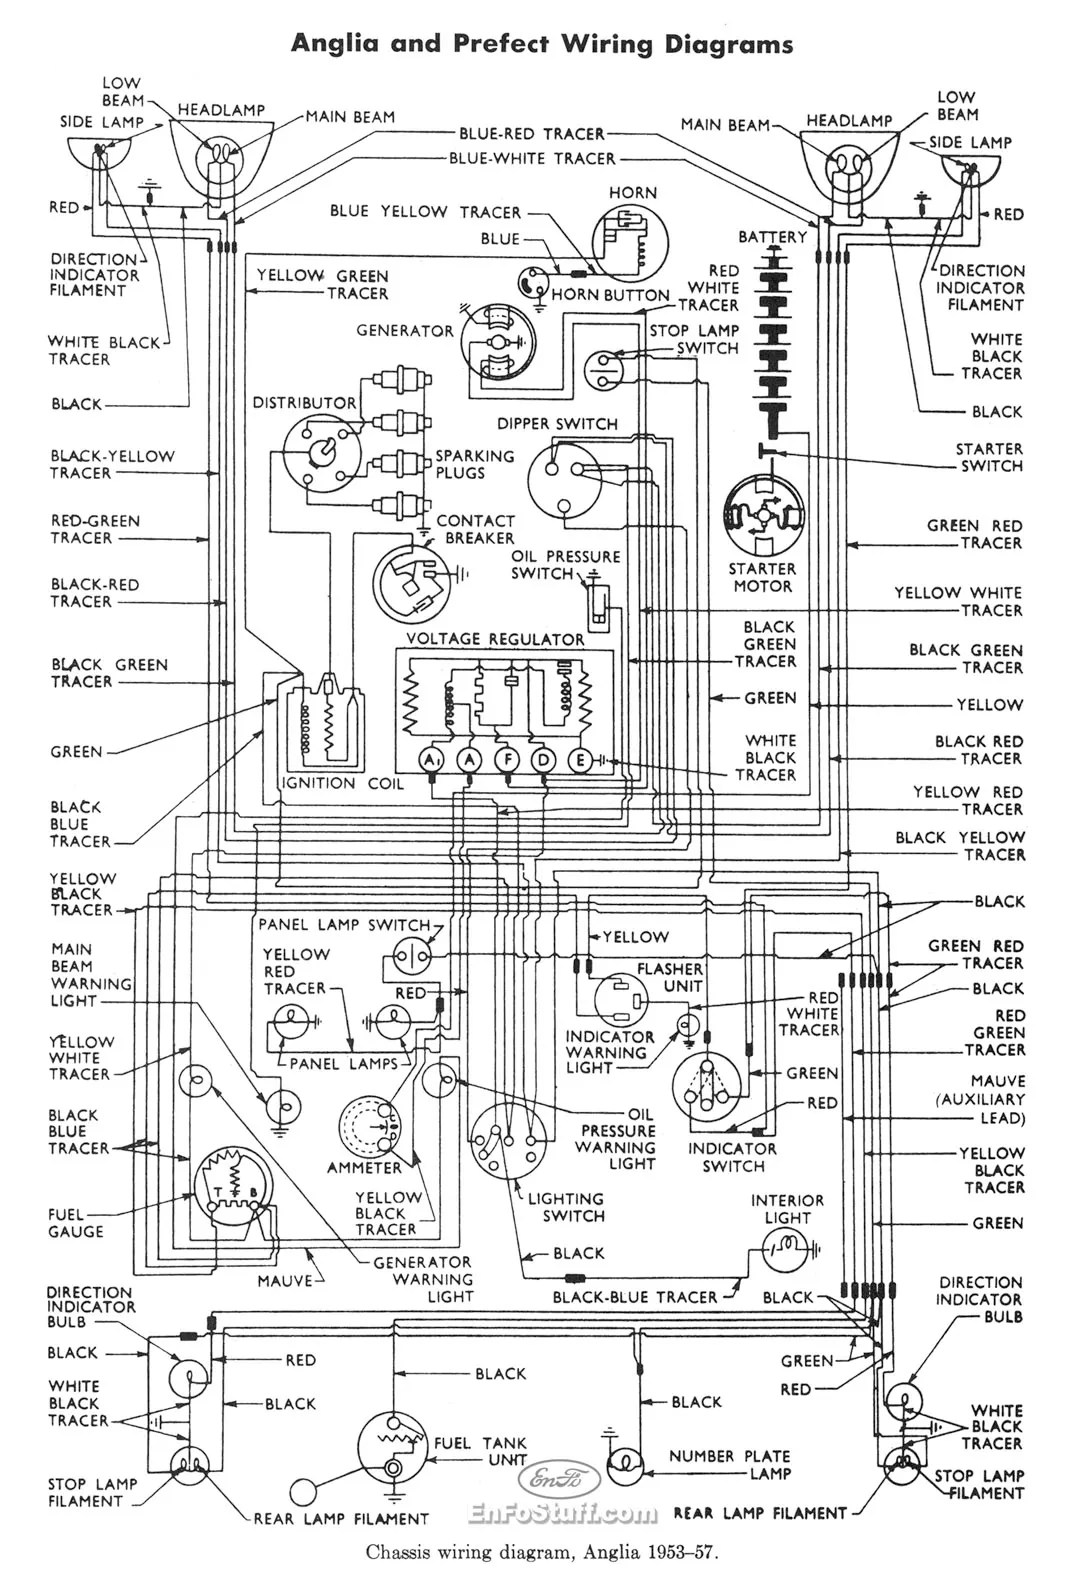 hight resolution of 8n ford tractor wiring diagram 12 volt 8n get free image ford 9n tractor electrical diagram ford 5000 tractor electrical wiring diagram